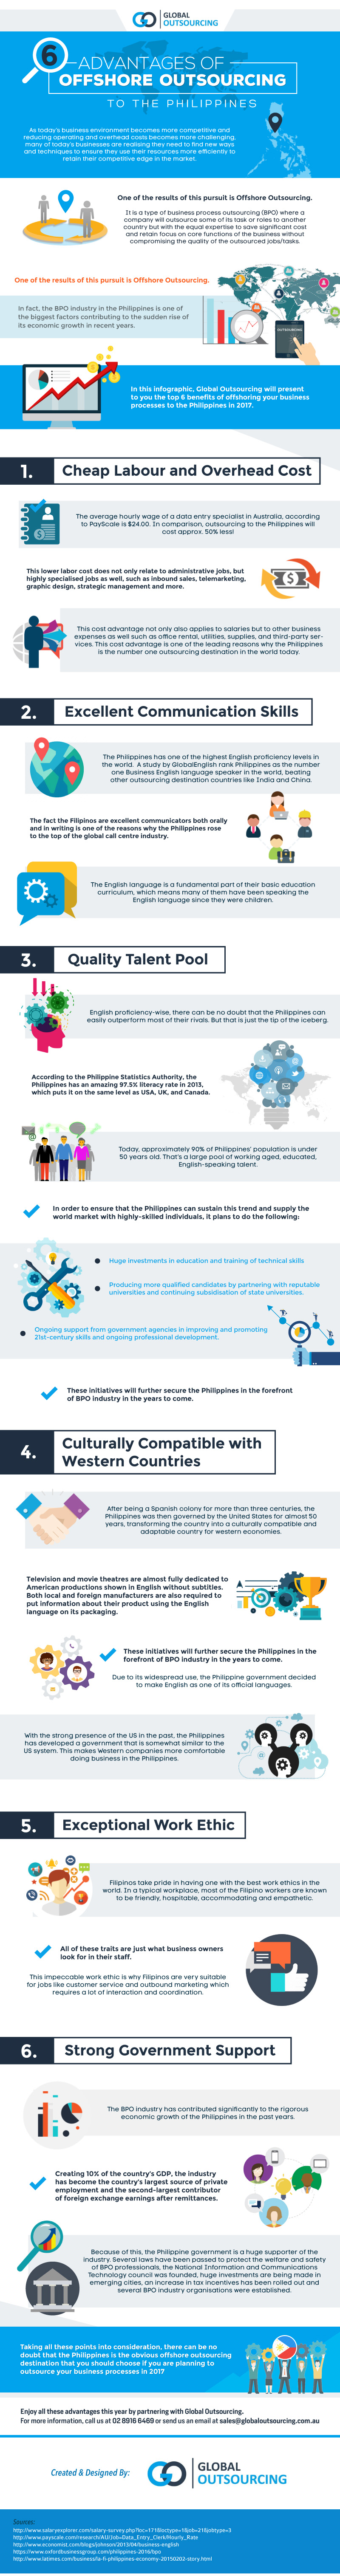 6 Advantages of Offshore Outsourcing to the Philippines [Infographic]